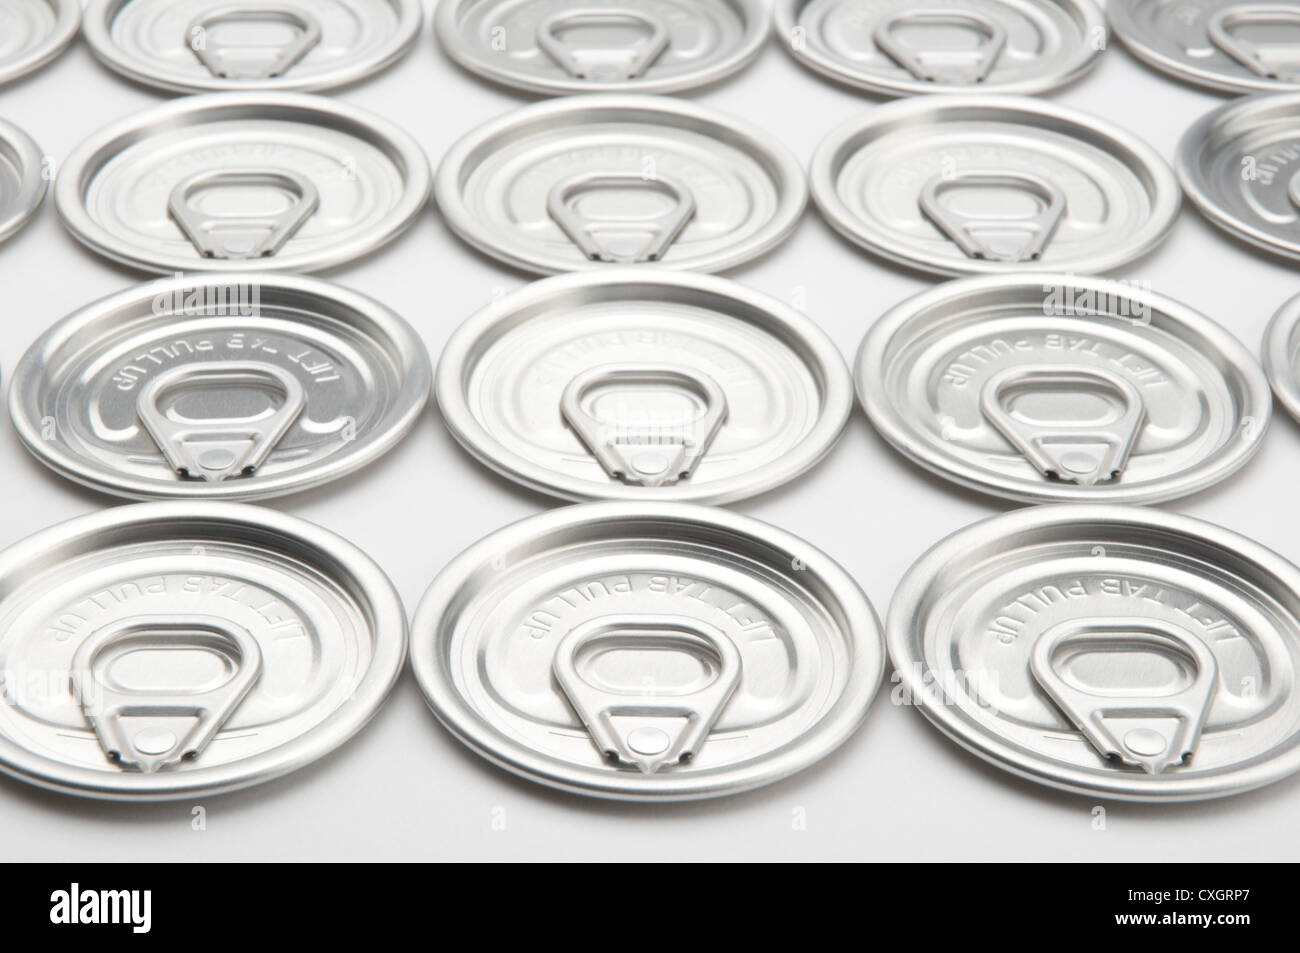 Tin can pull tabs - Stock Image